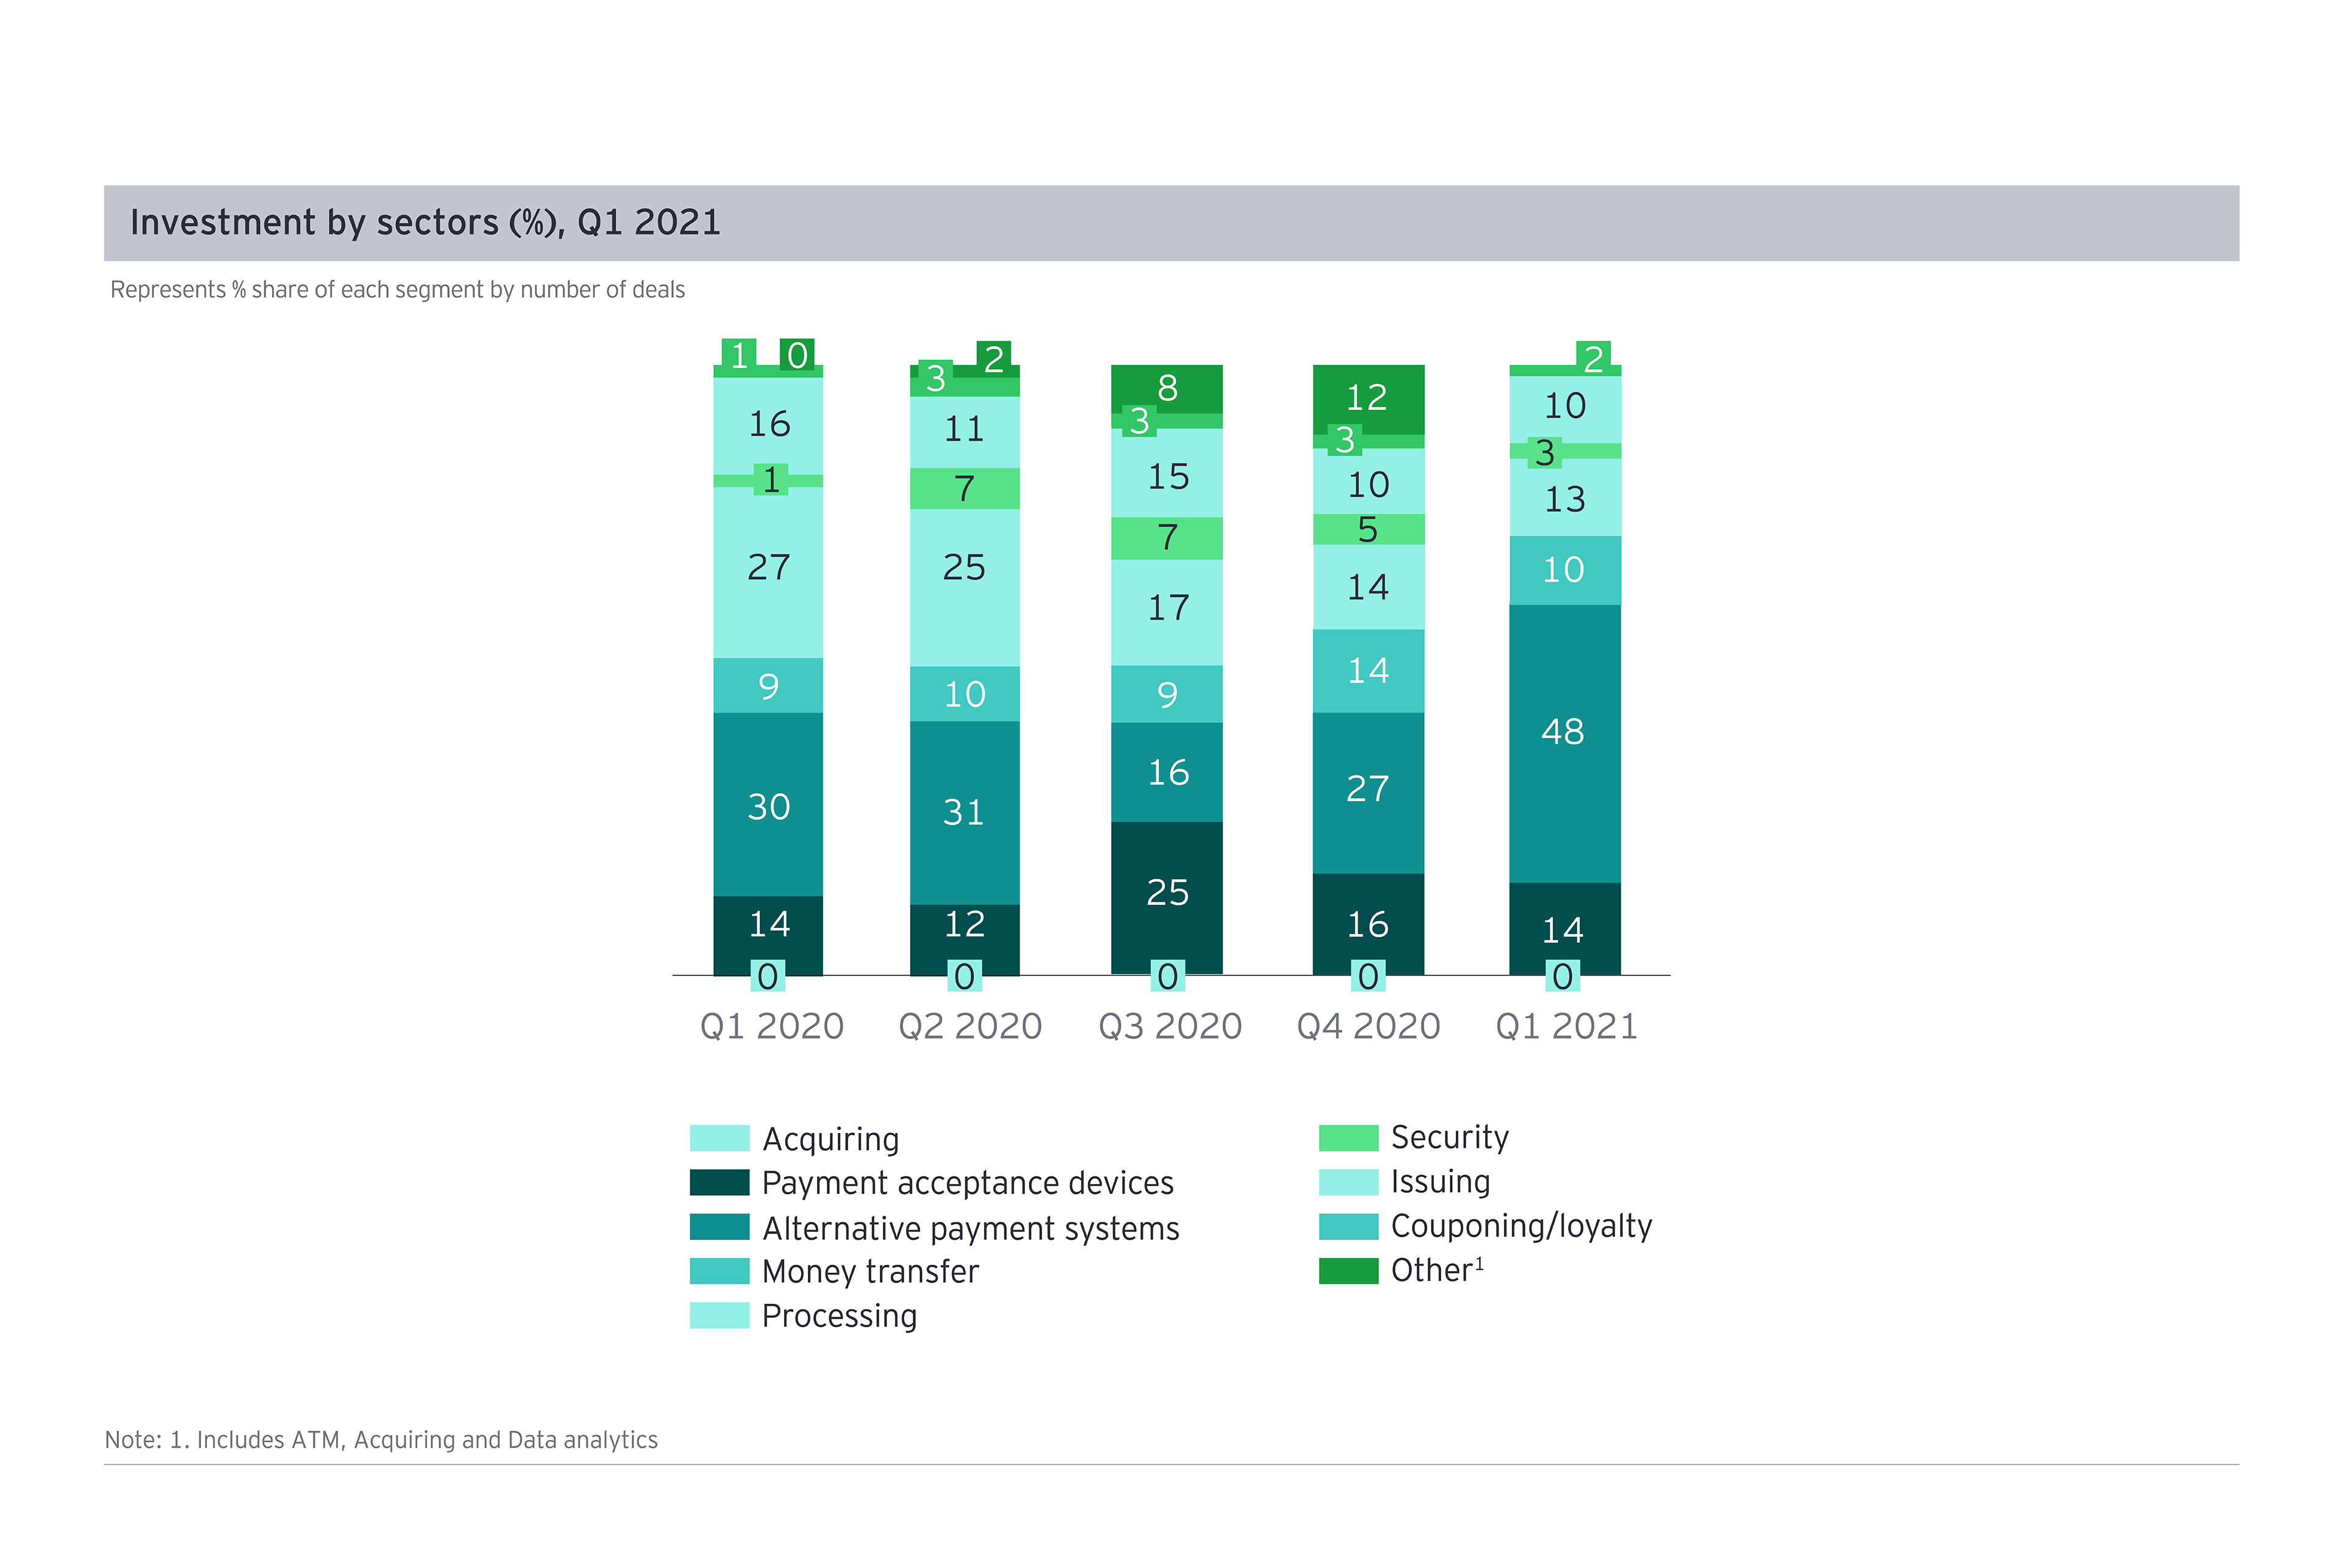 Investment by sectors Q1 2021